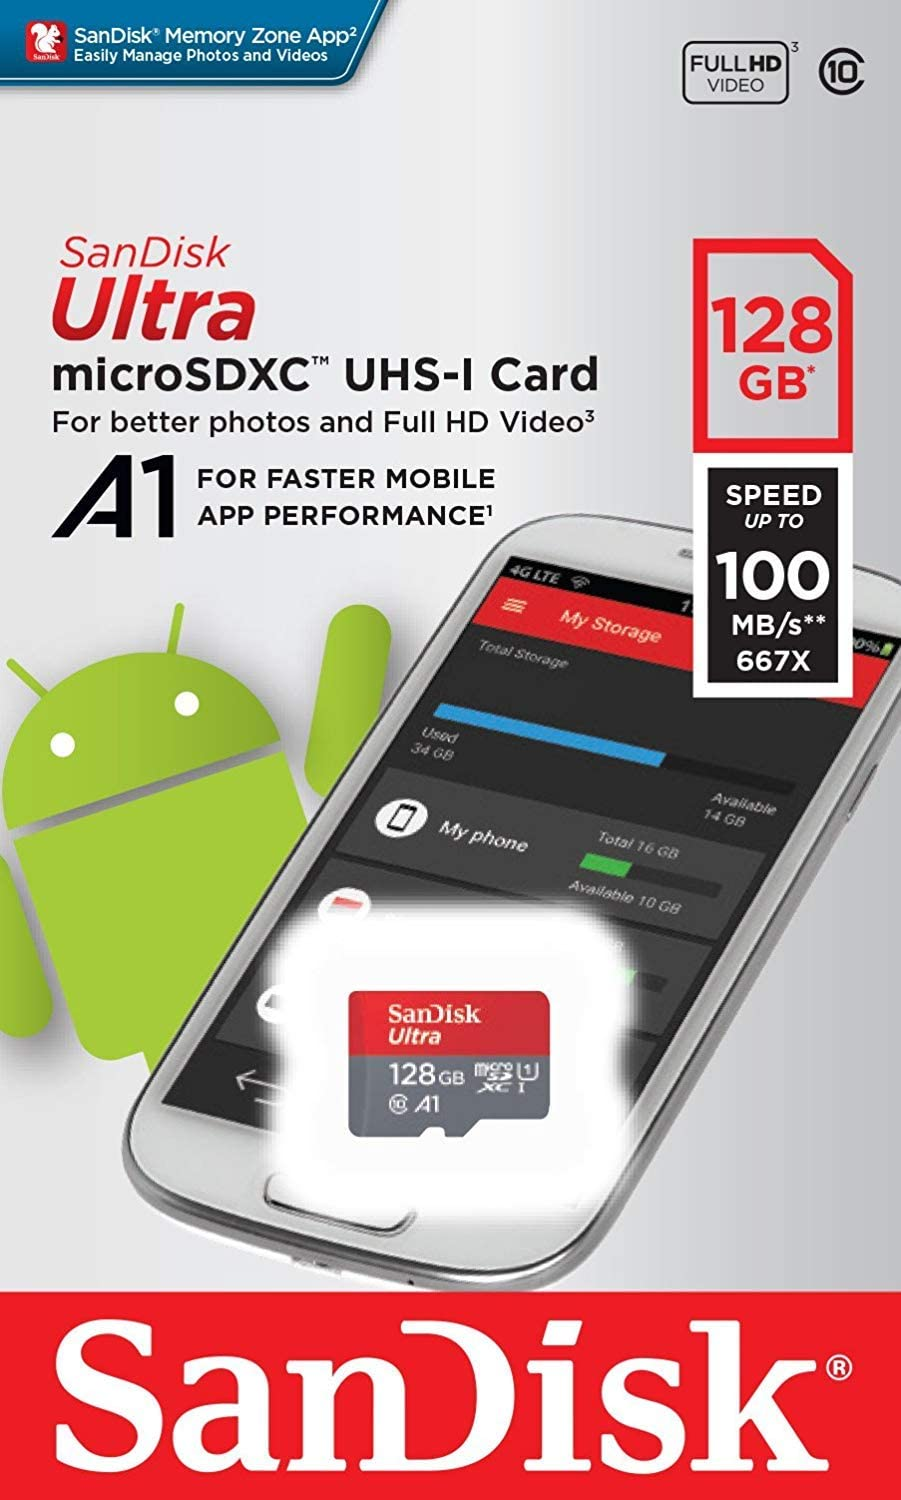 100MBs A1 U1 C10 Works with SanDisk SanDisk Ultra 128GB MicroSDXC Verified for BLU Studio 5.0 CE by SanFlash